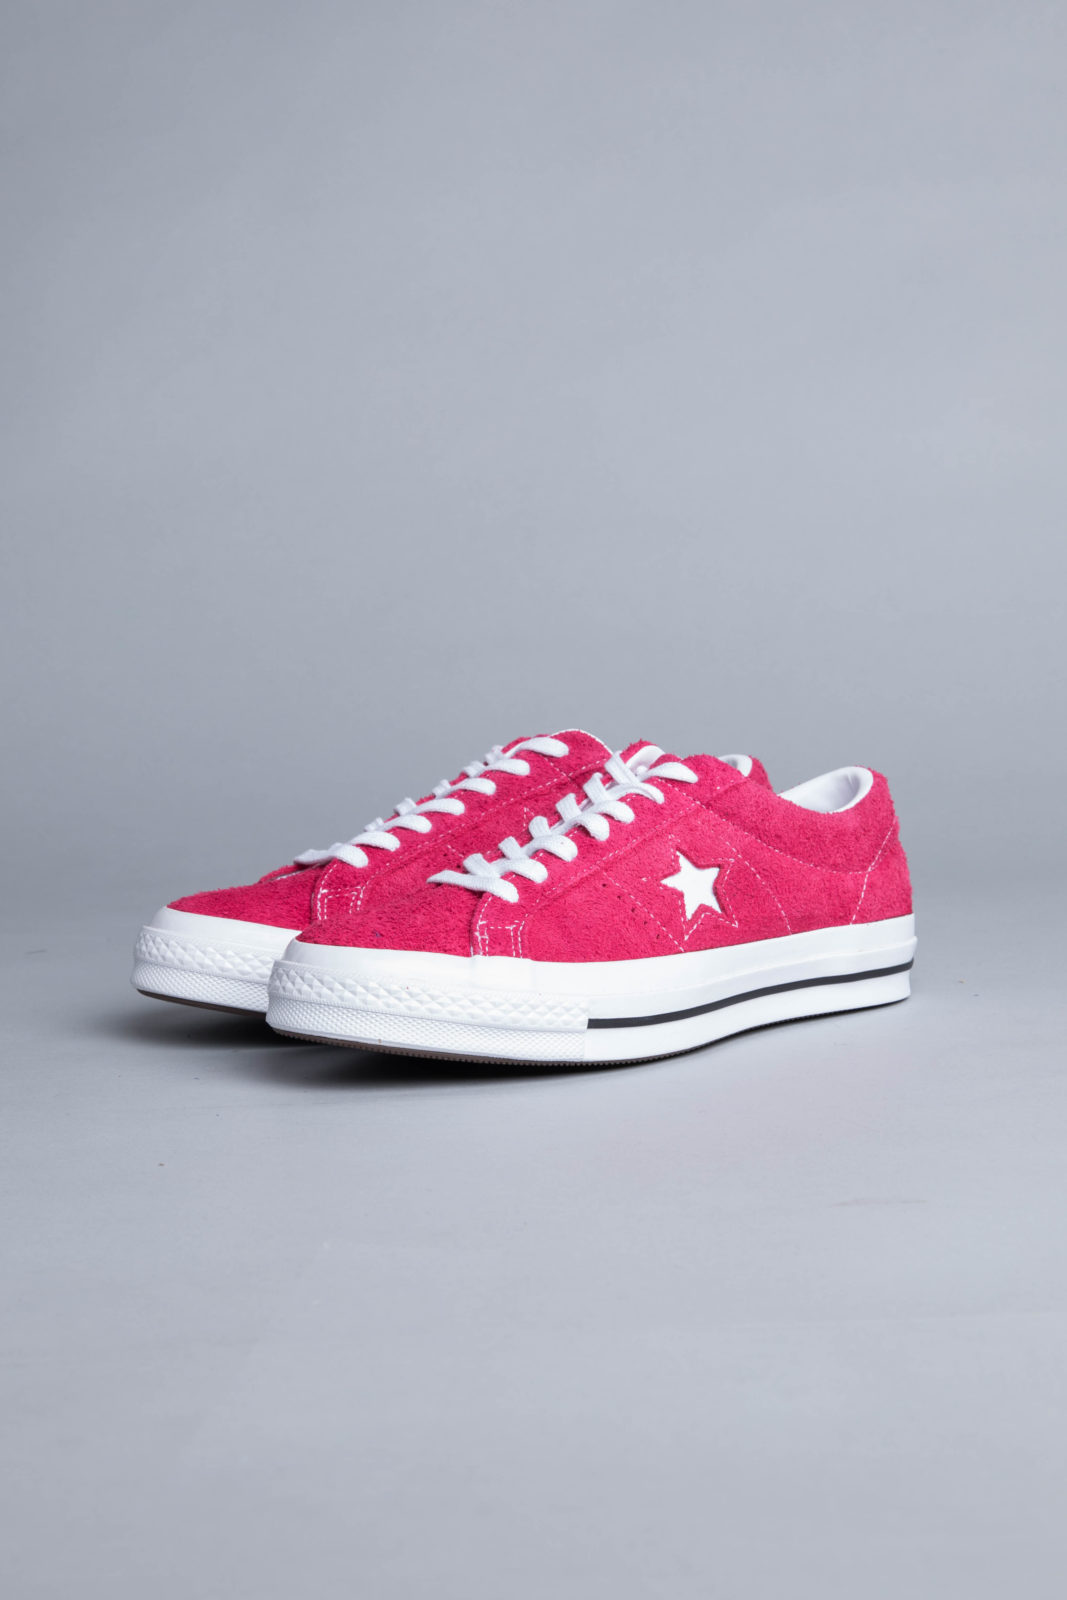 561b99f9304a Converse One Star OX Pink Pop White • Centreville Store in Brussels